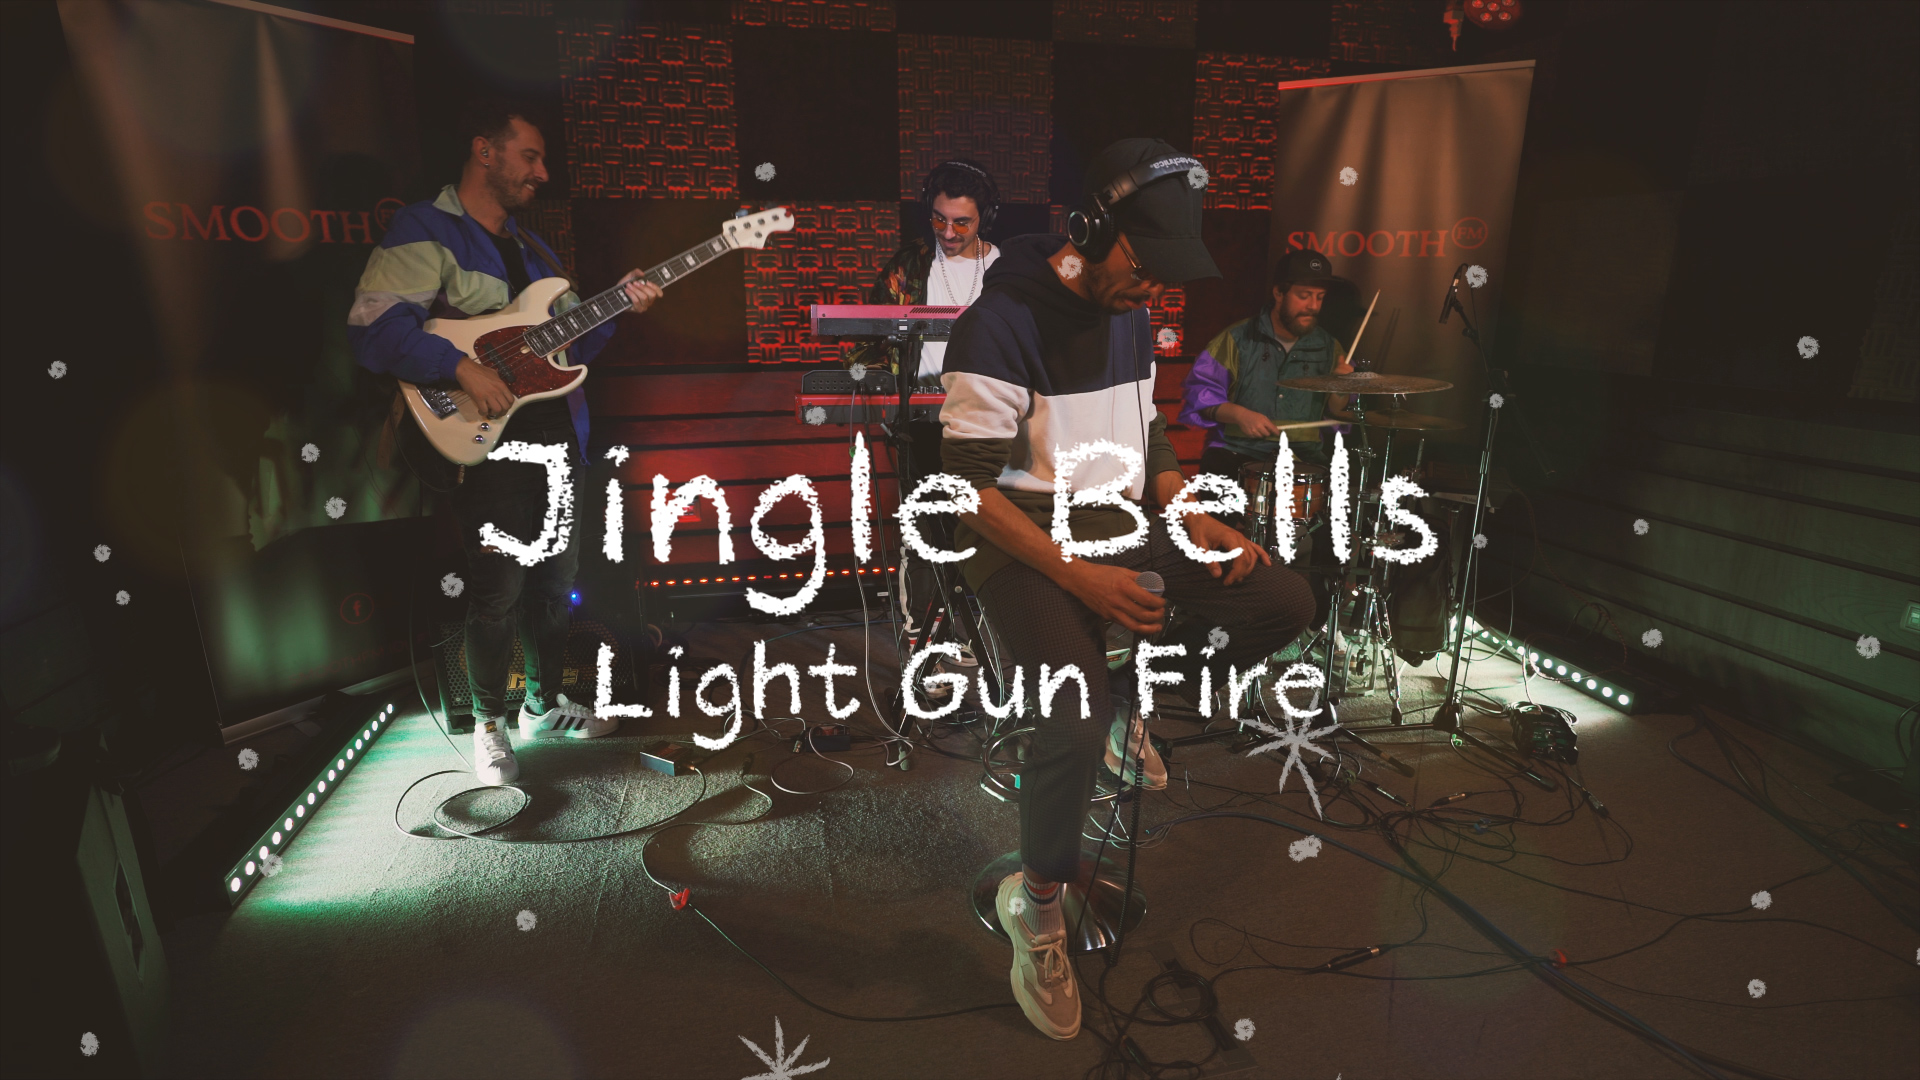 Smooth Christmas | Light Gun Fire - Jingle Bells